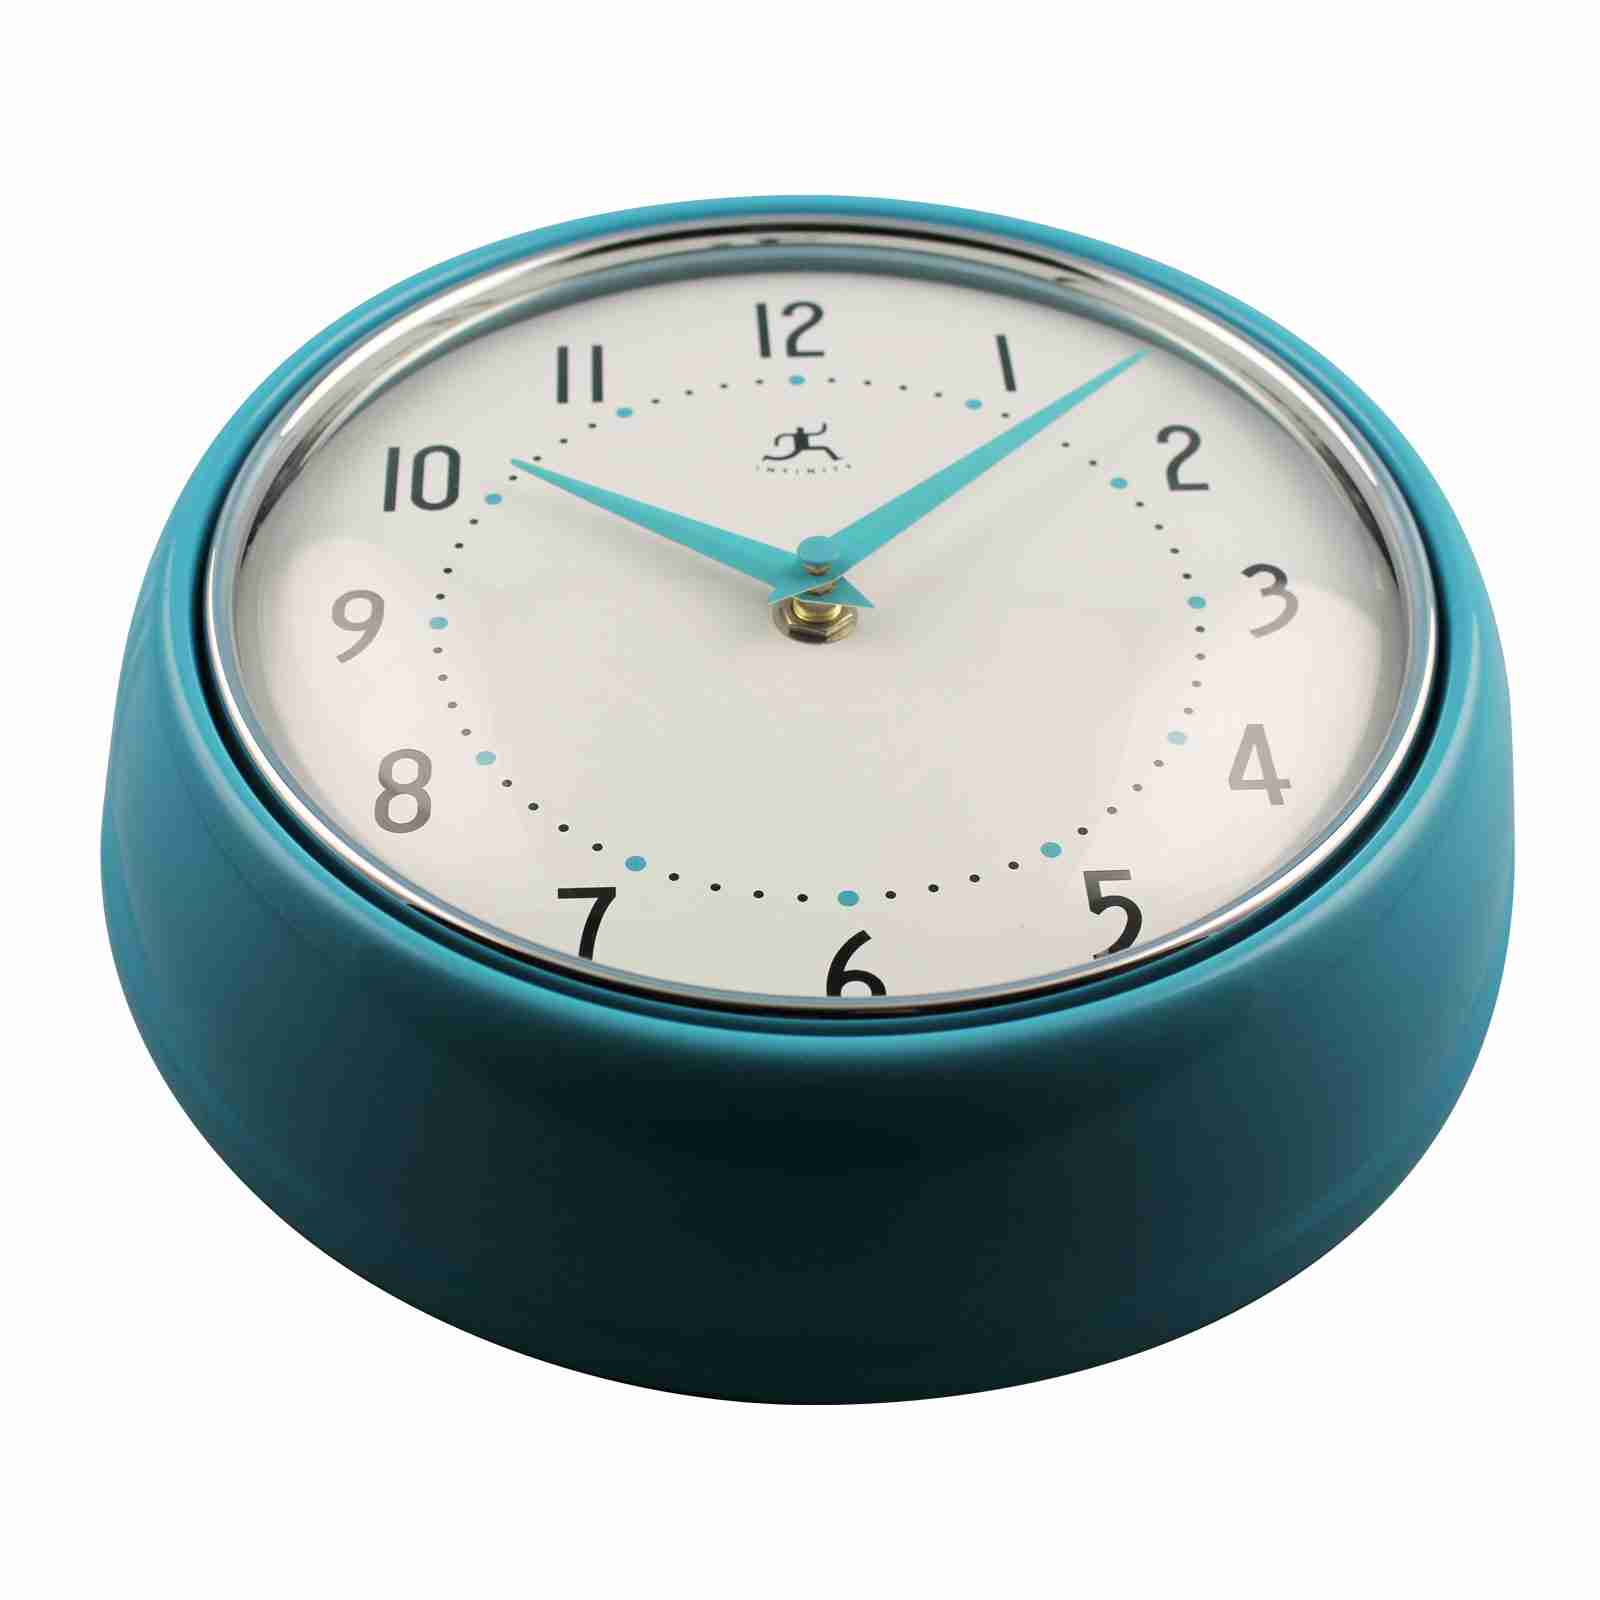 Turquoise Retro Wall Clock by Infinity